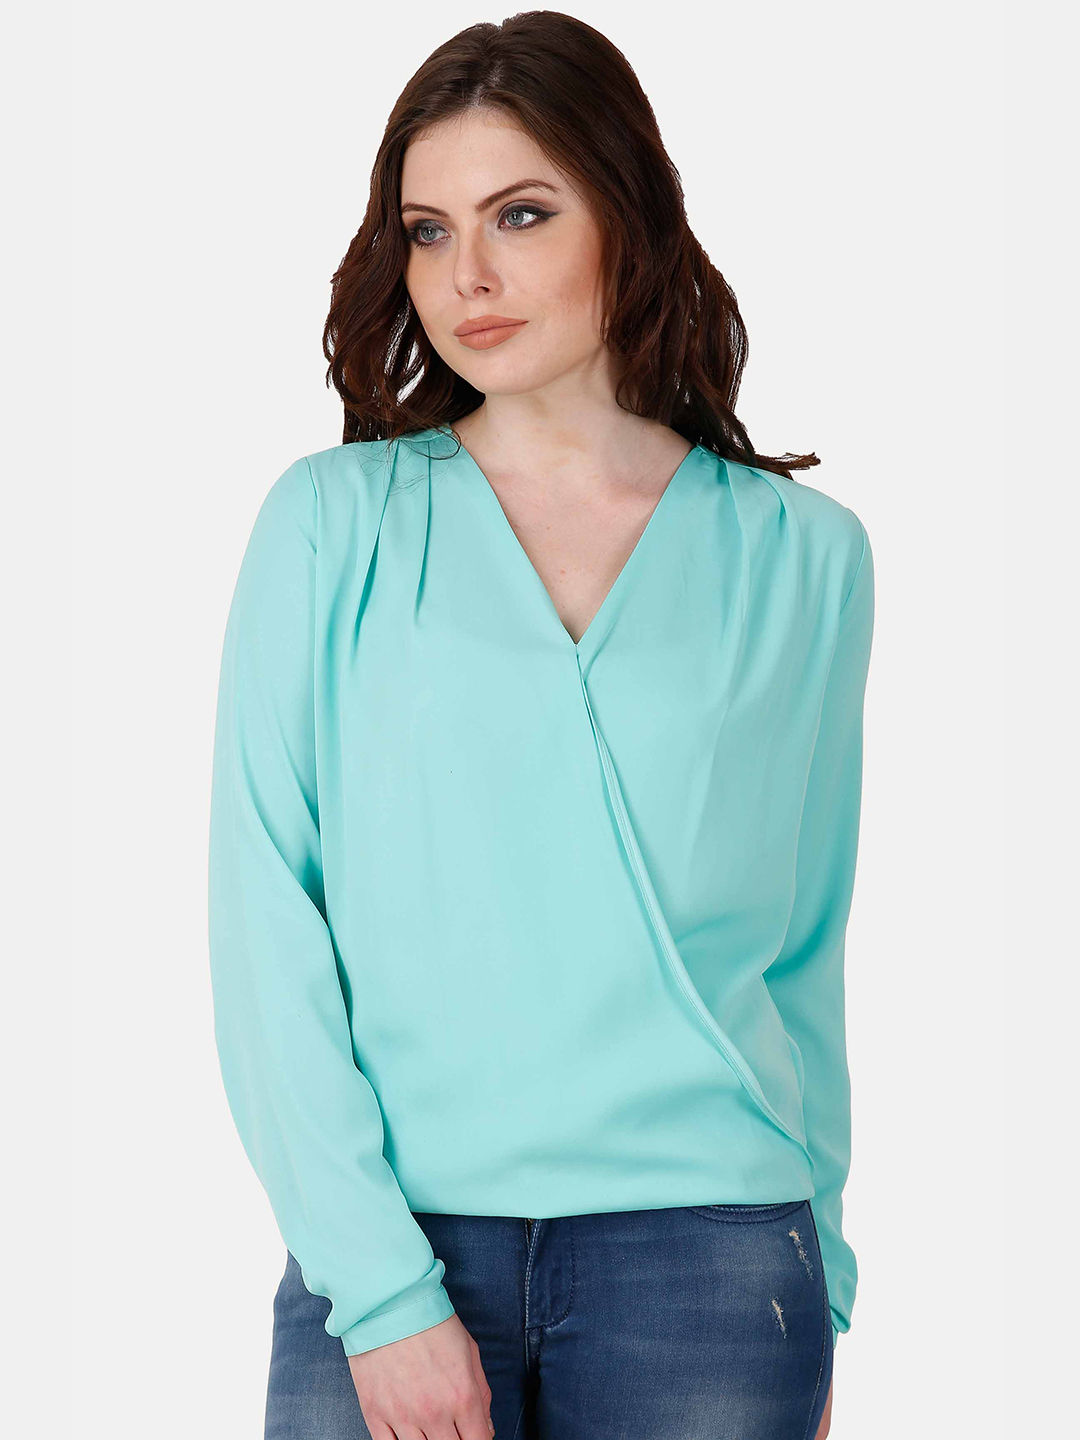 PEACOCK GREEN TOP